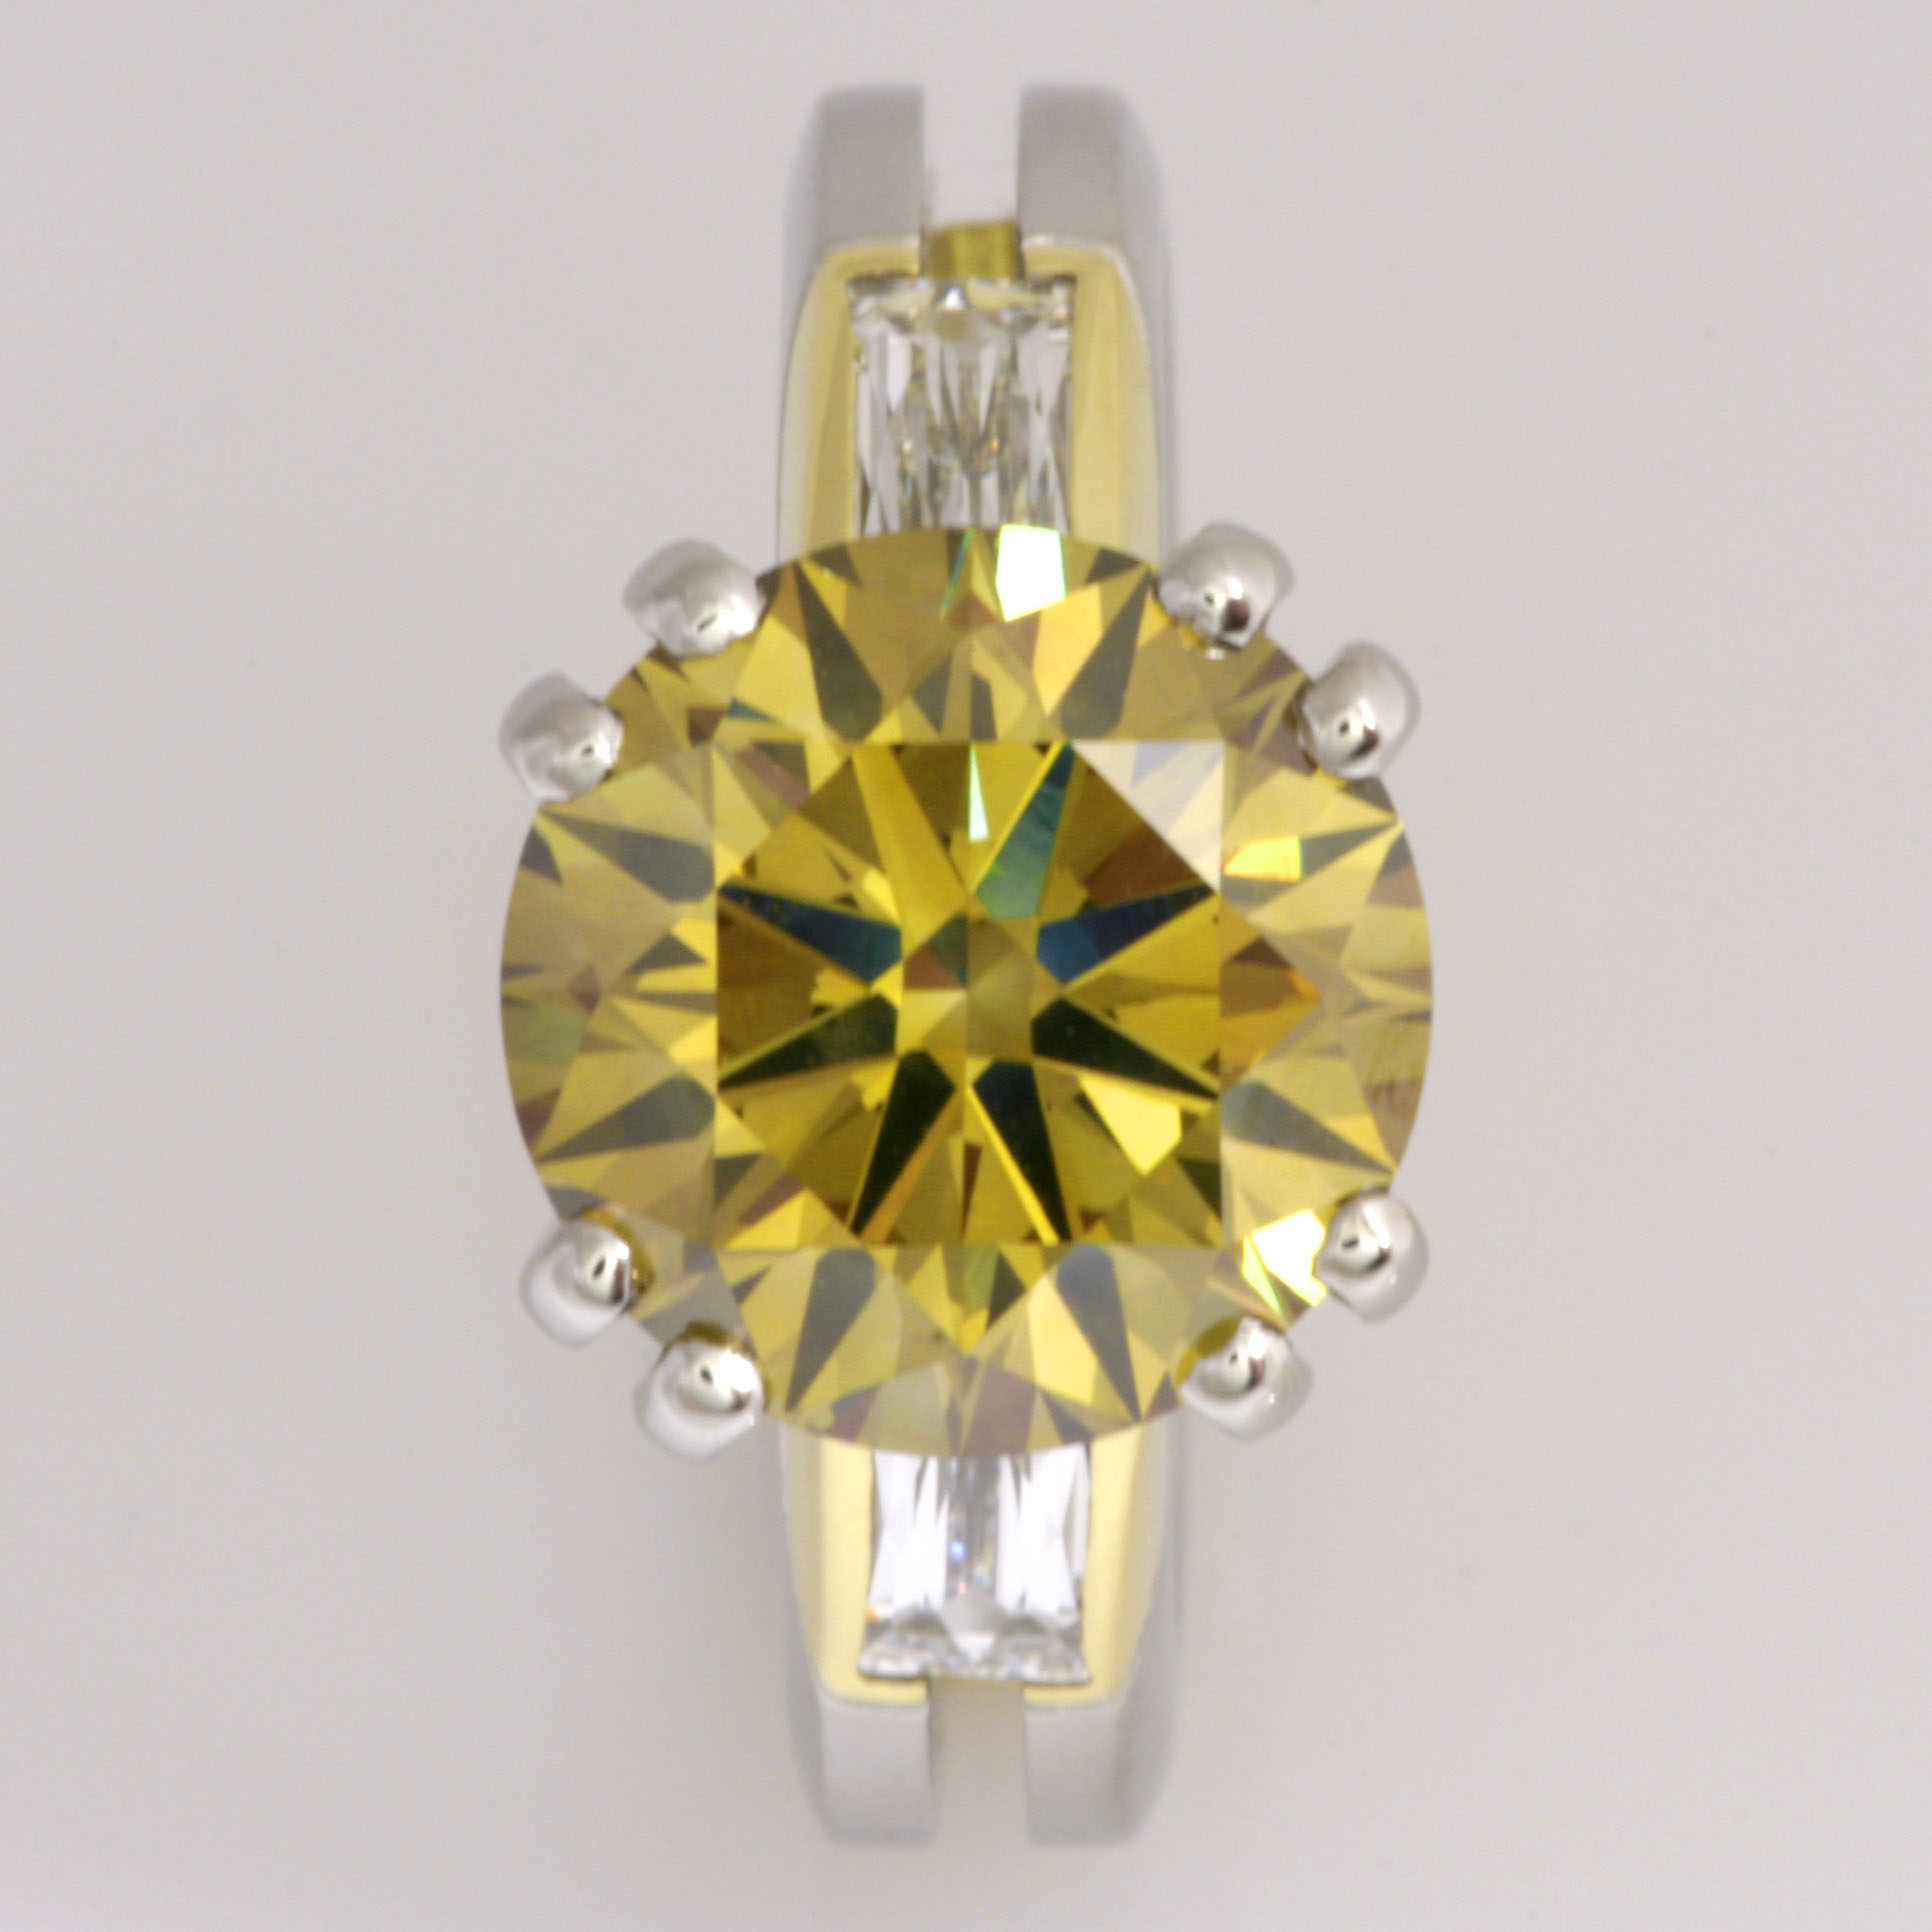 Handmade ladies platinum and 18ct green gold ring with a 5ct fancy deep brownish greenish yellow brilliant cut diamond in the centre with two shoulder matchbox 'tycoon' cut diamonds